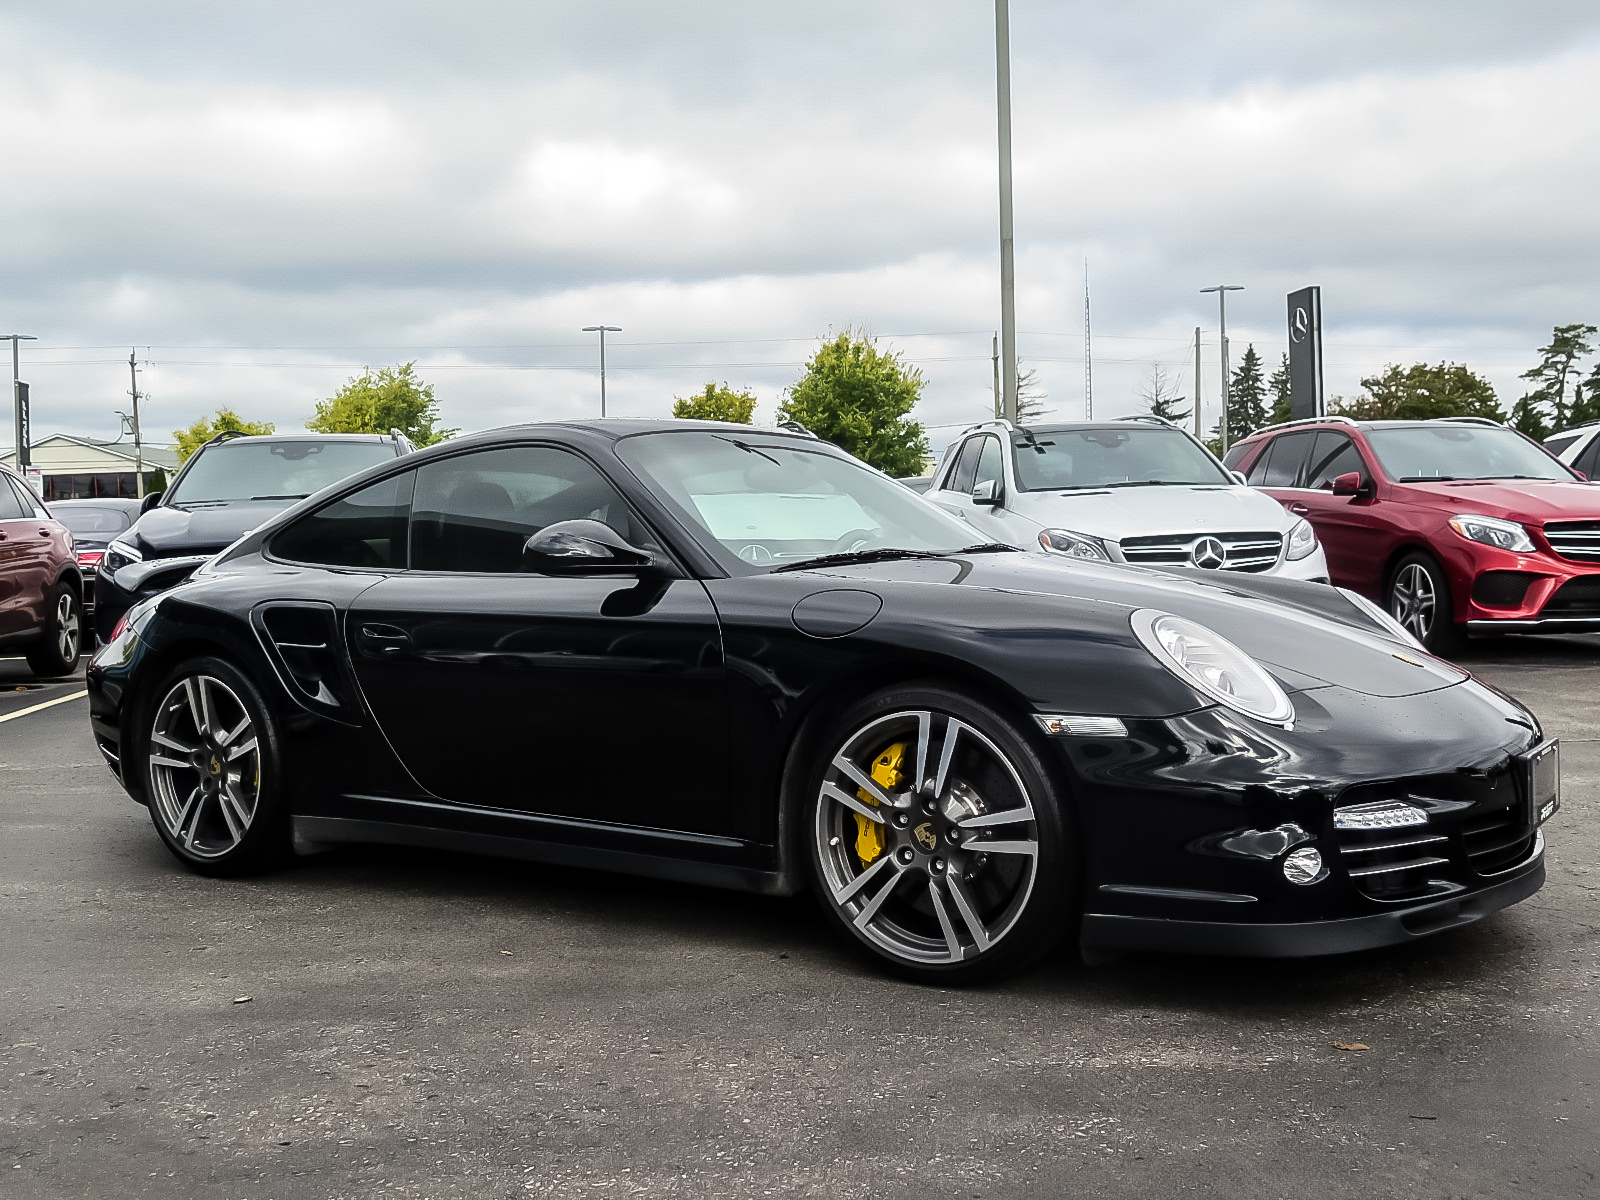 Pre-Owned 2012 Porsche 911 Turbo S Coupe PDK